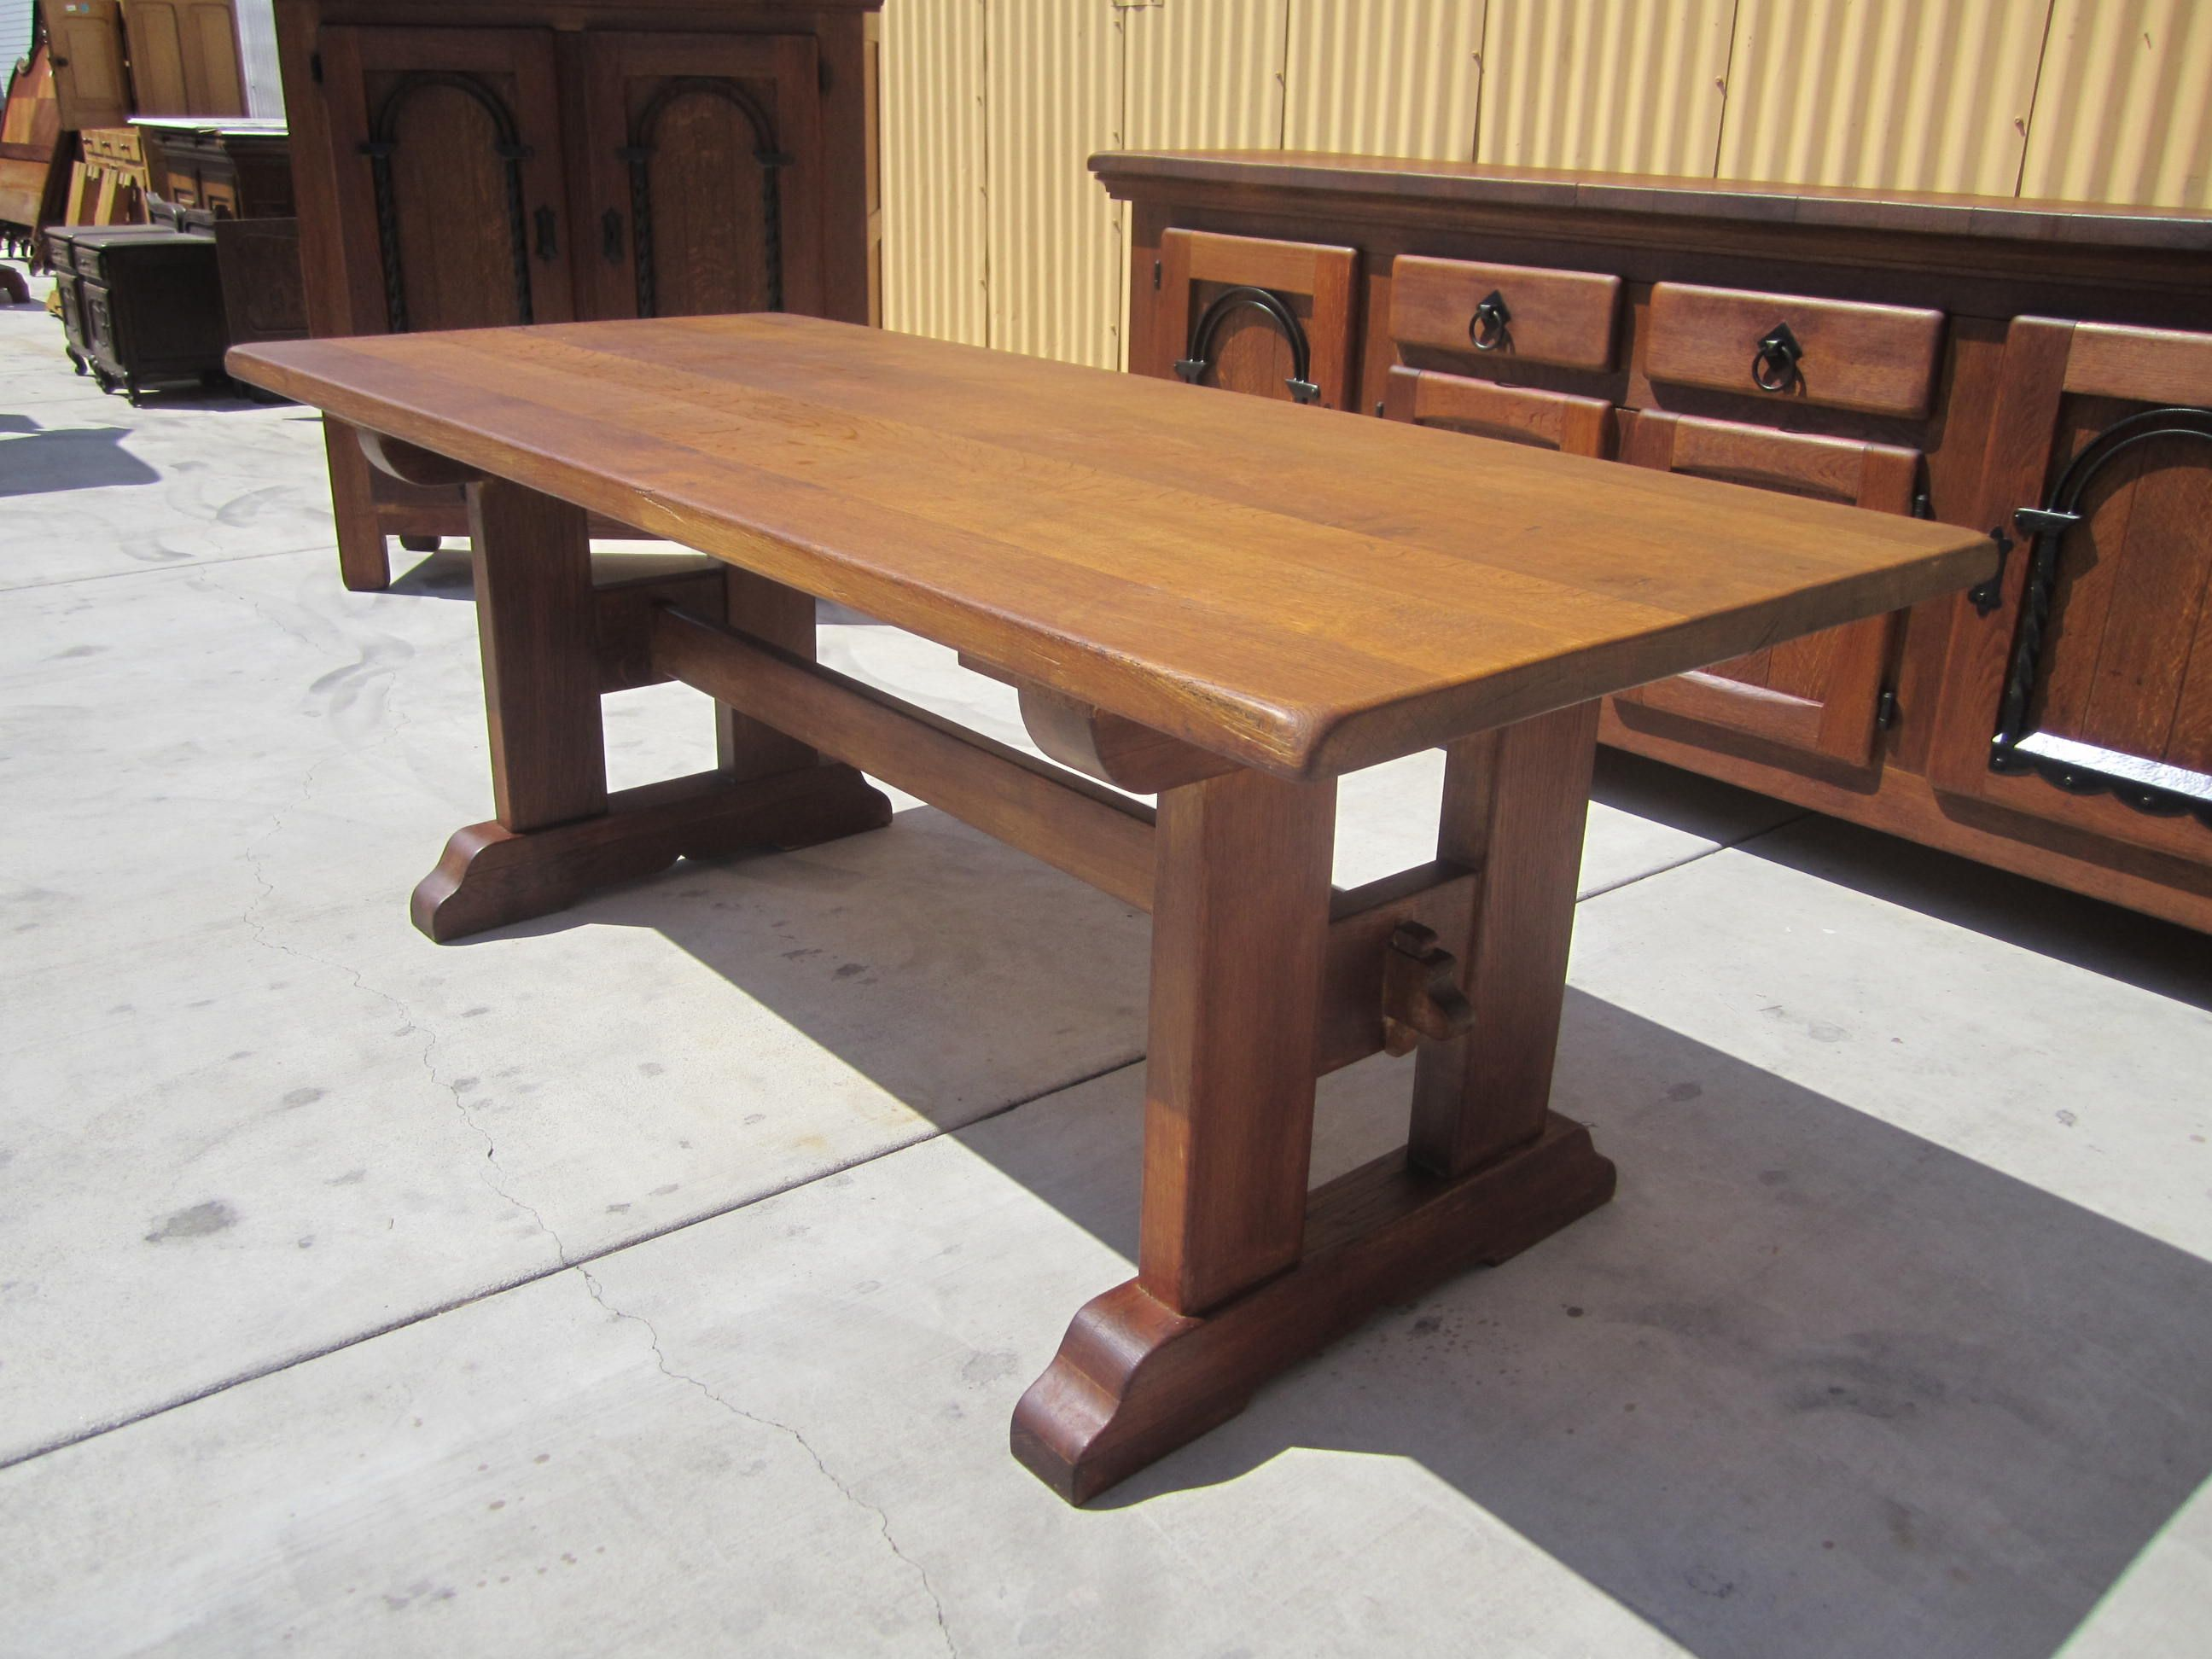 French Antique Rustic Trestle Table Dining Table Antique Furniture